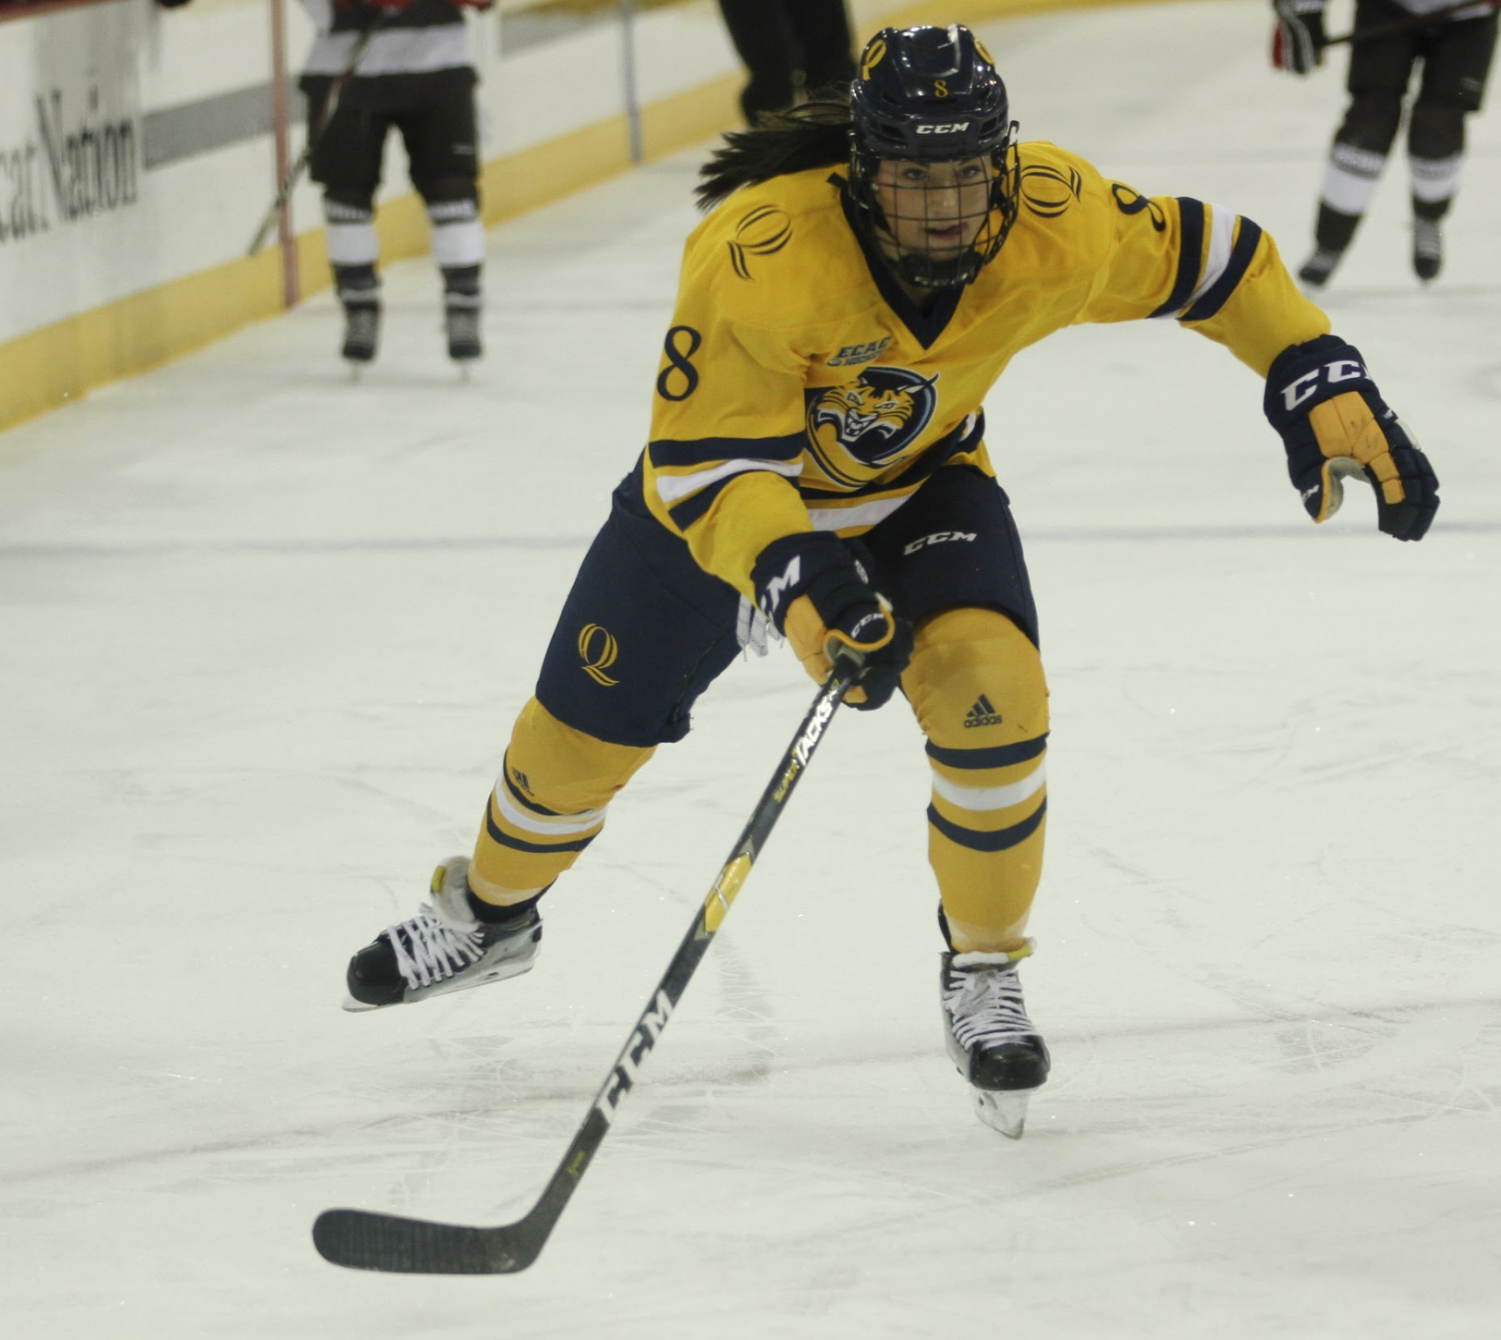 Photo Courtesy: Liz Flynn/Quinnipiac Bobcats Sports Network